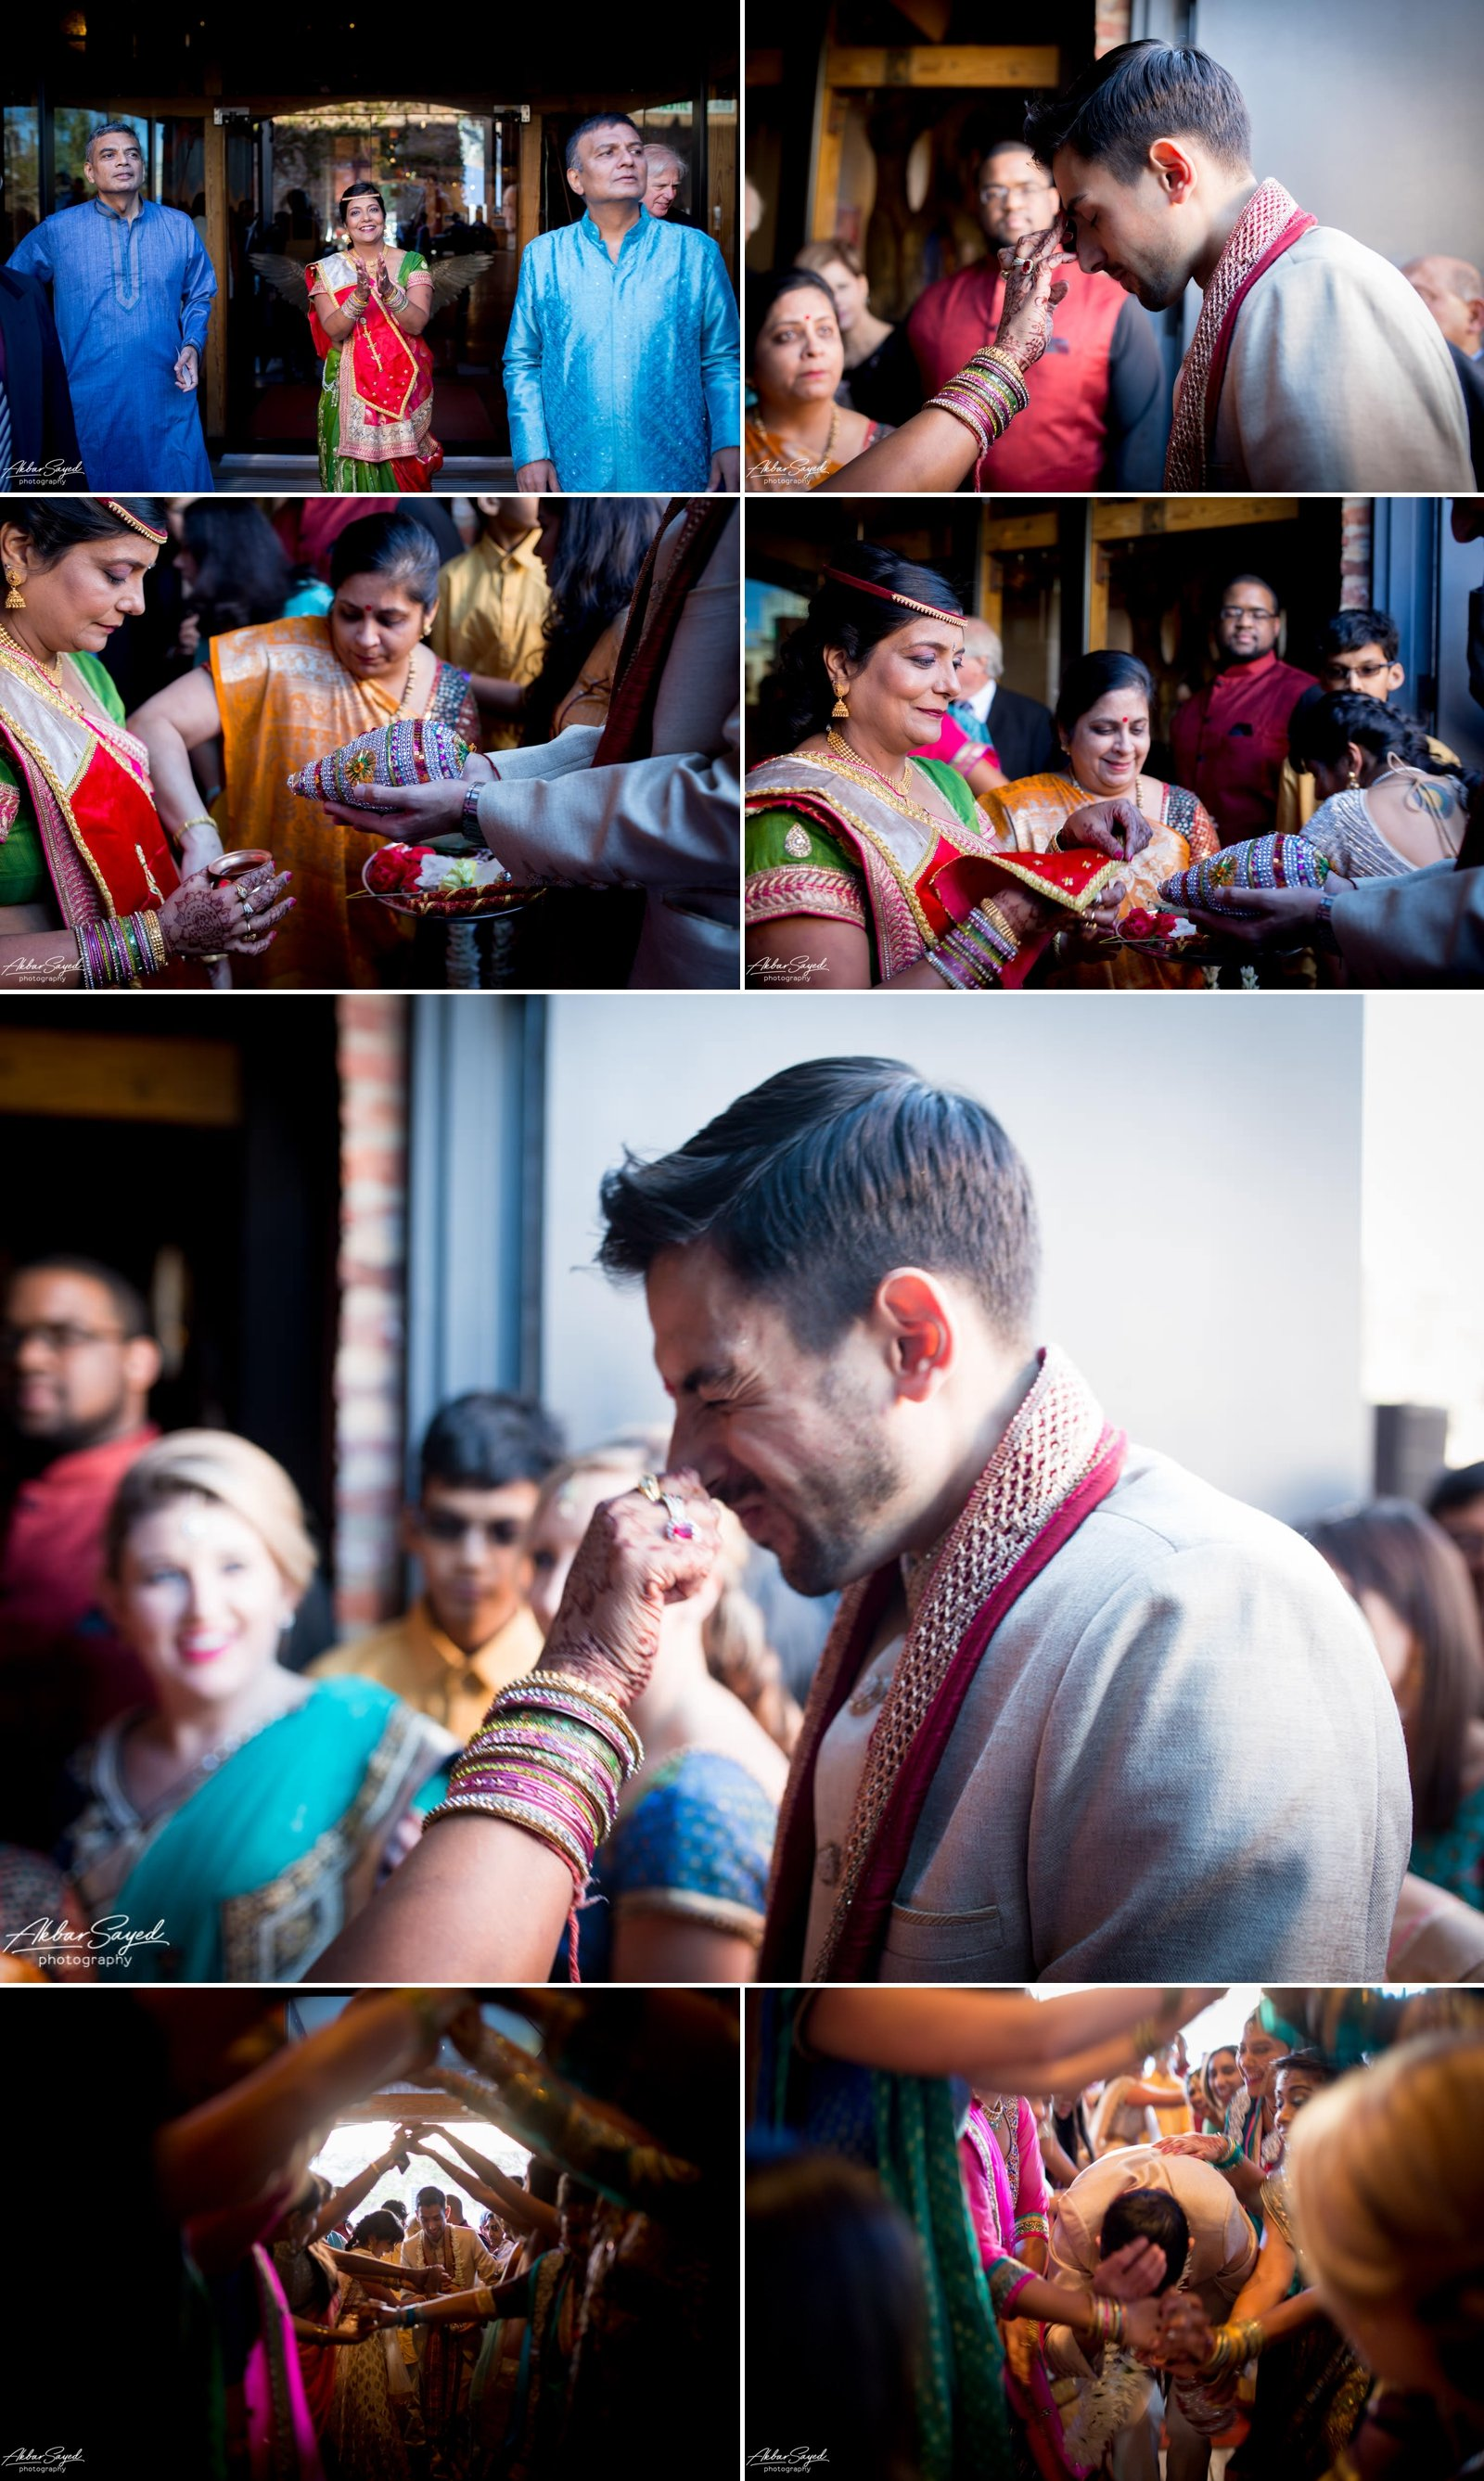 A photo collage of a Iranian groom getting blessed by a Hindu Priestess at his Hindu wedding American Visionary Art Museum in Baltimore, Maryland.